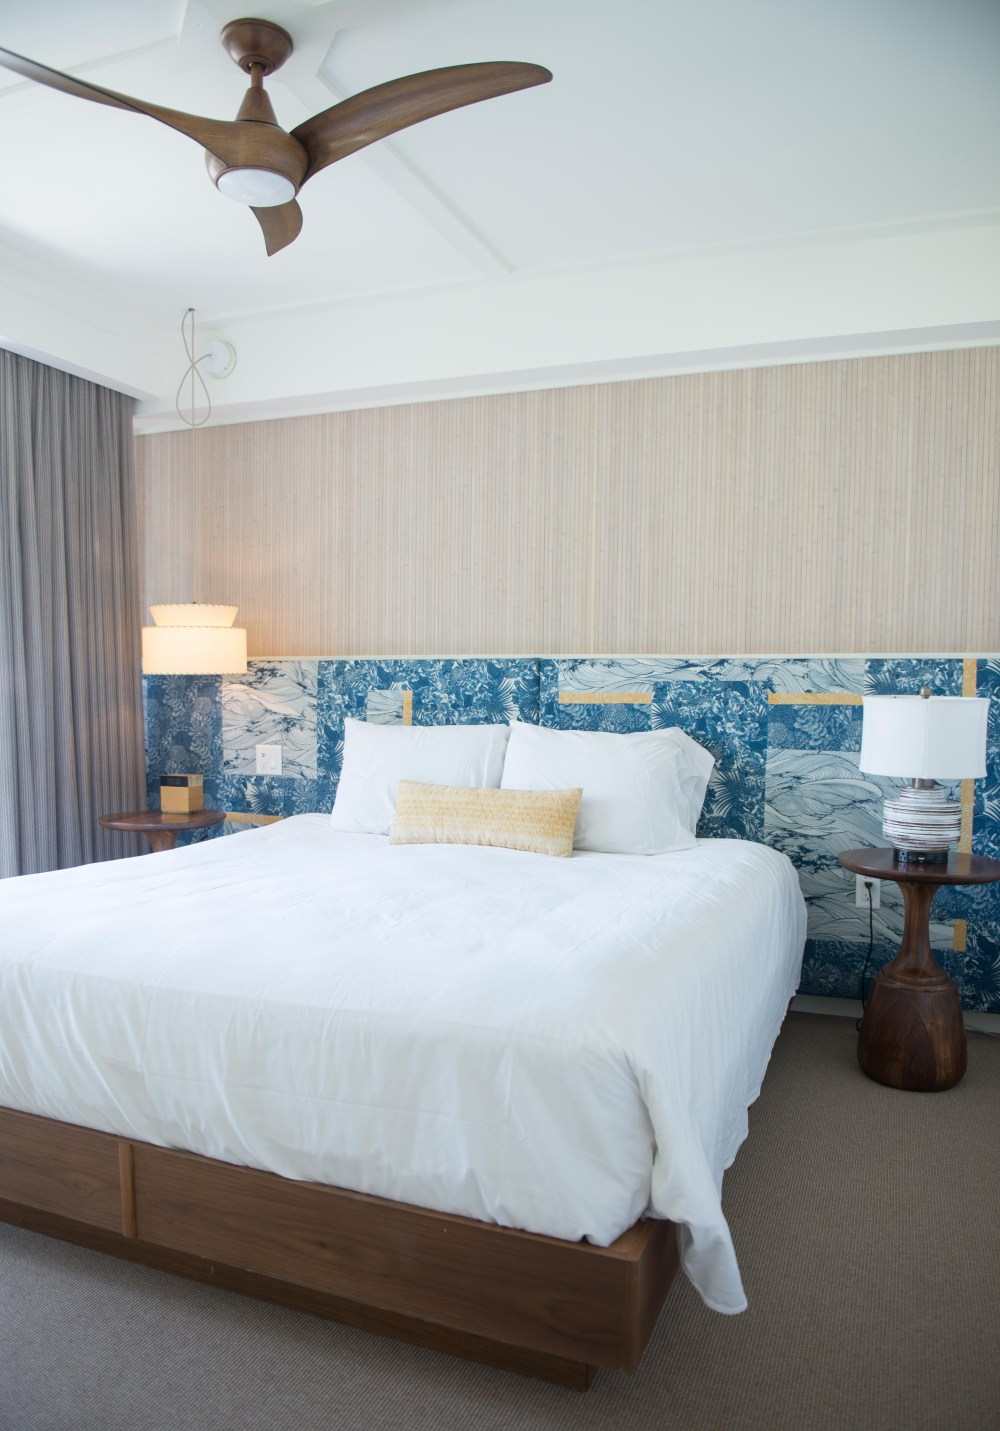 Places to Stay in Oahu, Hawaii: The Surfjack Hotel - Bedroom #camandtay #camlee